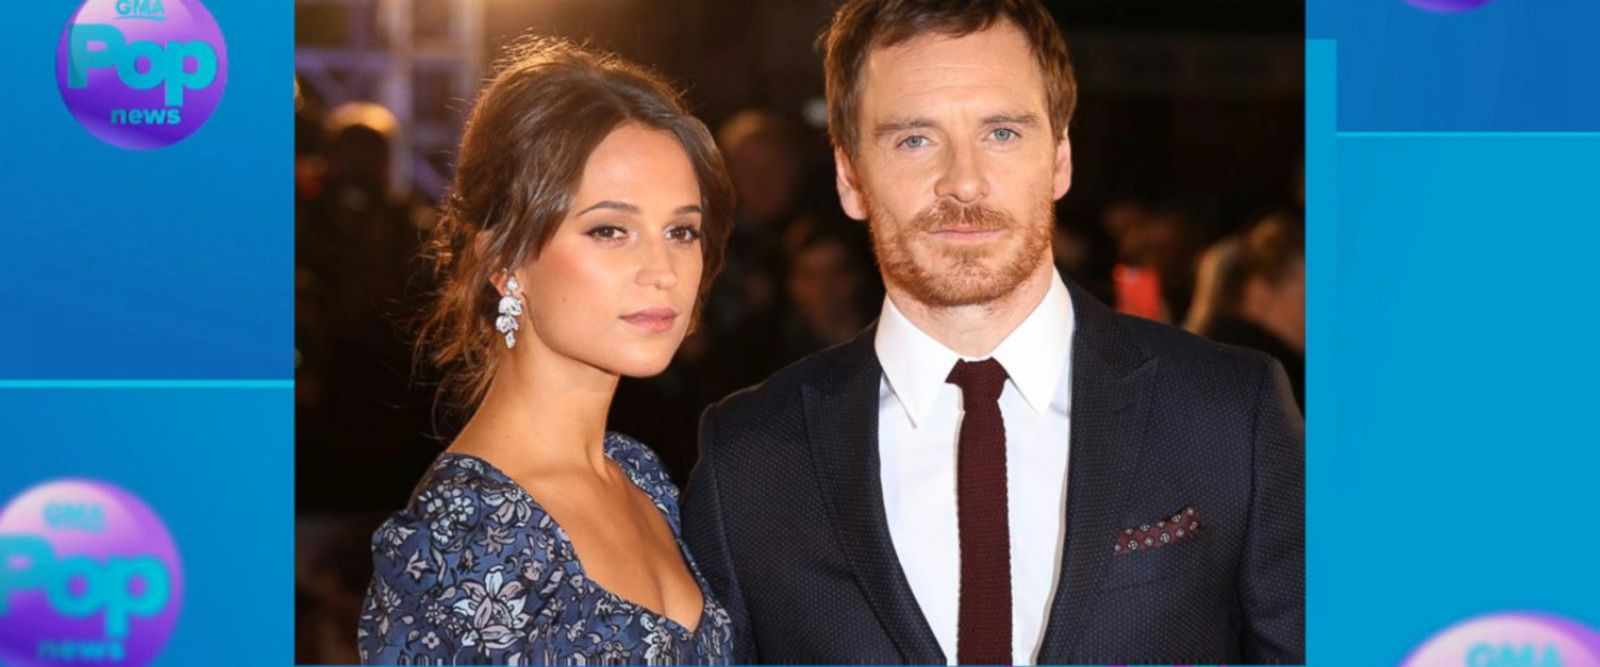 VIDEO: Michael Fassbender and Alicia Vikander reportedly tie the knot in Ibiza